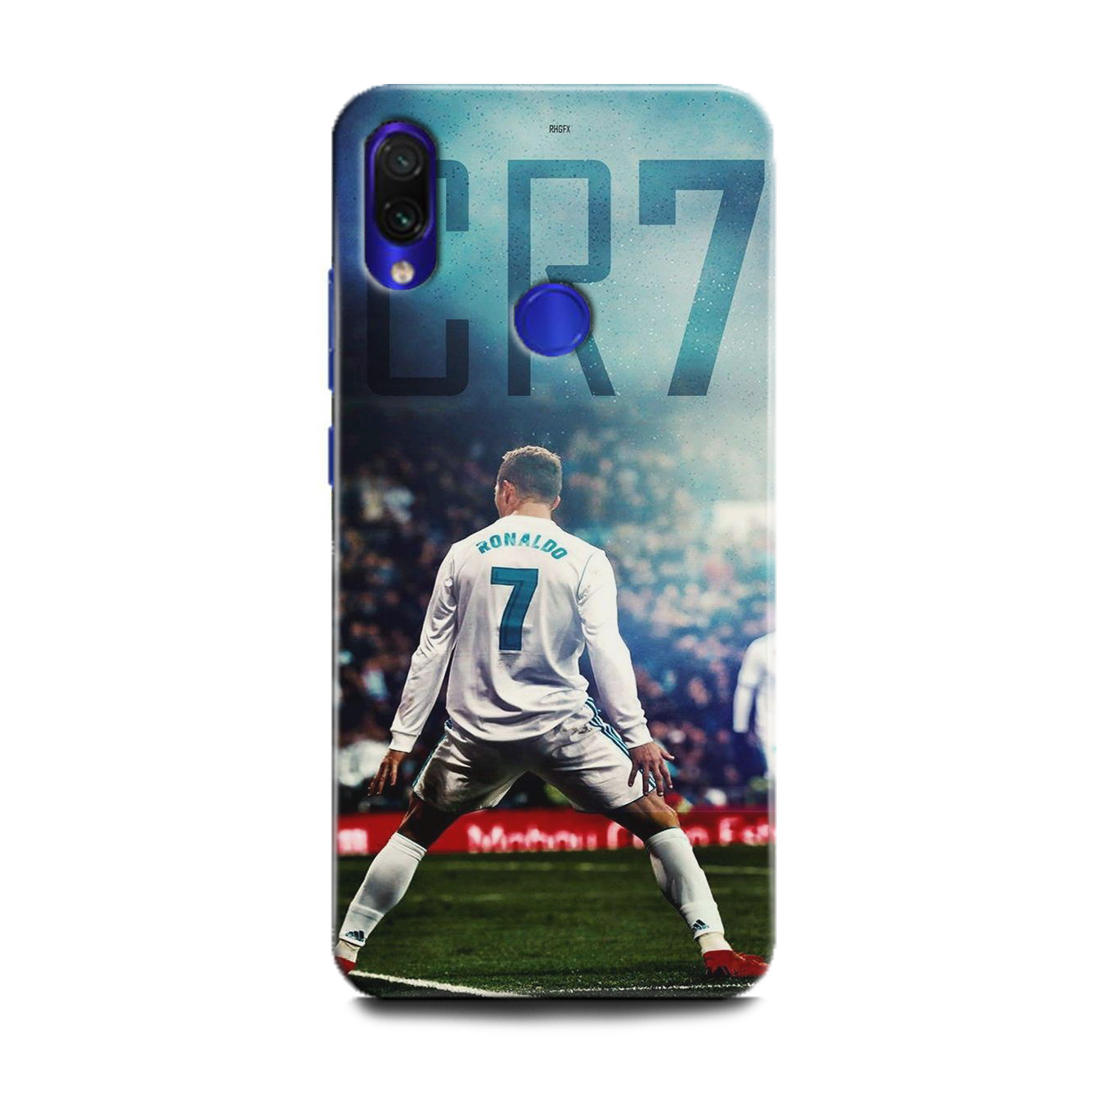 INDICRAFT Mobile Back Cover For Mi Redmi Note 7 Pro / Hard Case (Cristiano Ronaldo, Ronaldo 7, CR-7, Real Madrid, Football, Ronaldo Celebration, Sports, MZB7464IN) (AB-Note7Pro-0143)